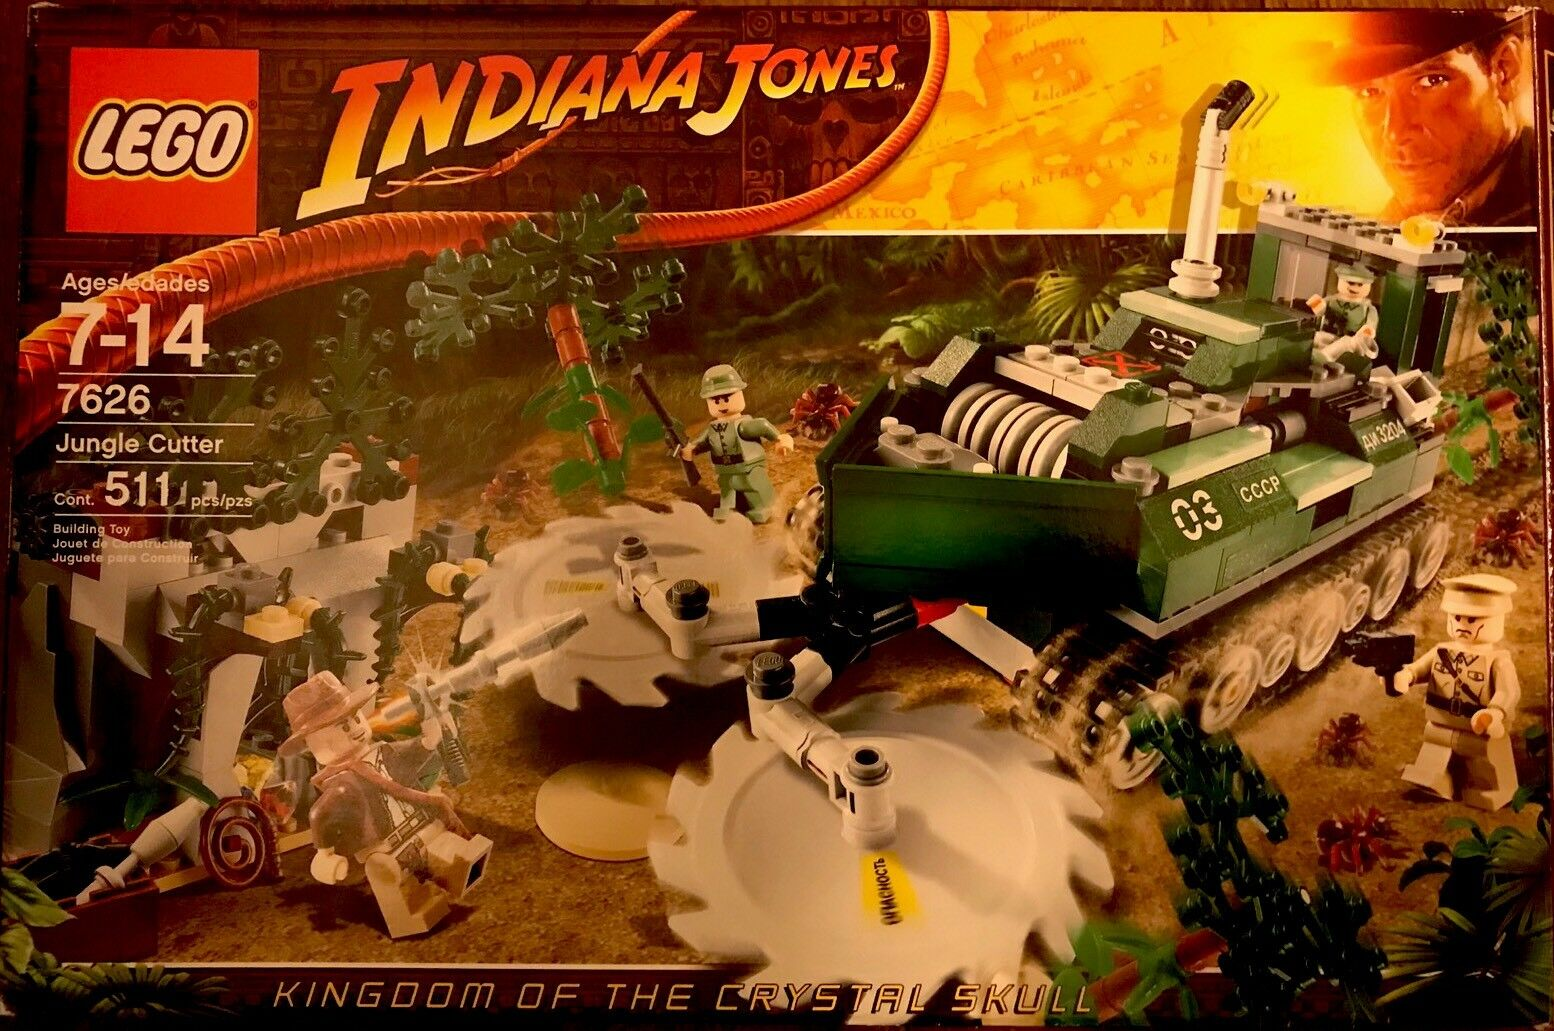 Indiana  Jones™ LEGO The Jungle Cutter (Russian Convoy) 7626 RETIrosso SET  stanno facendo attività di sconto